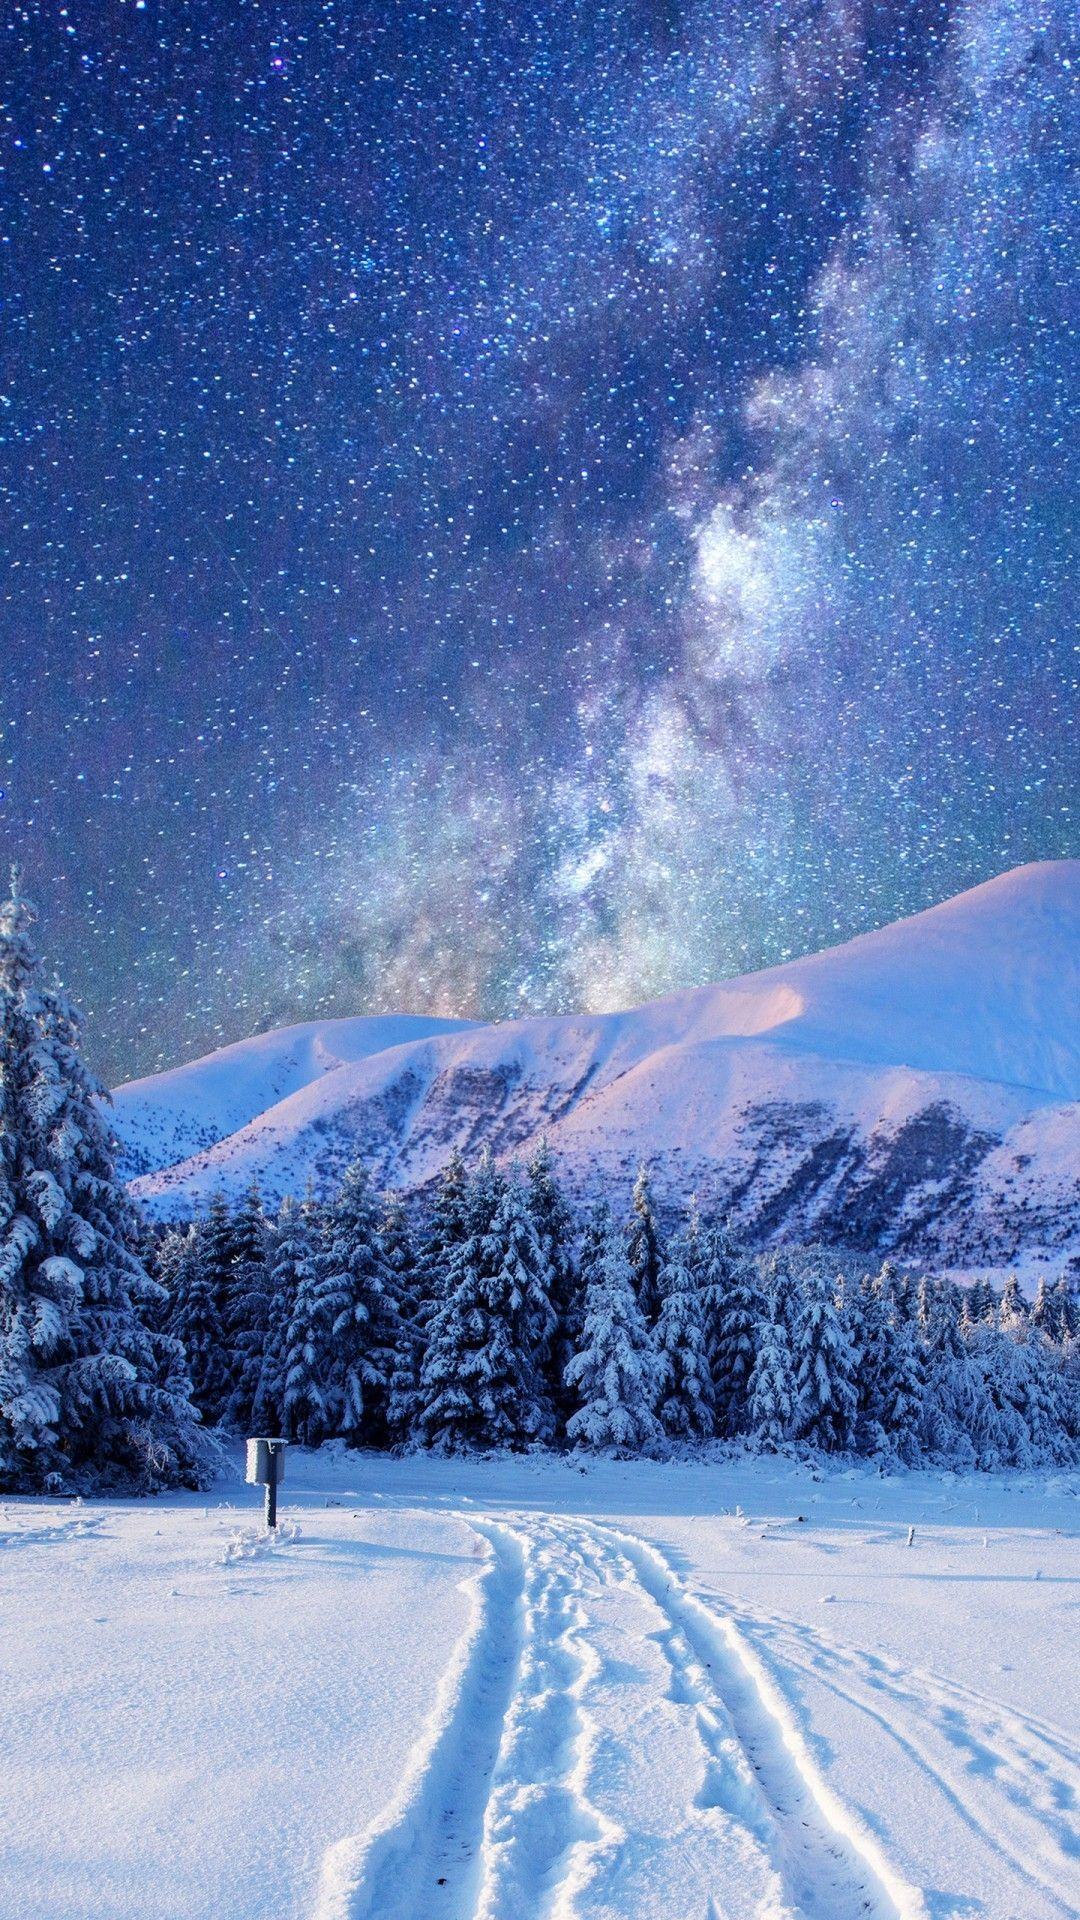 Night Snow Wallpaper Android in 2020 Iphone wallpaper